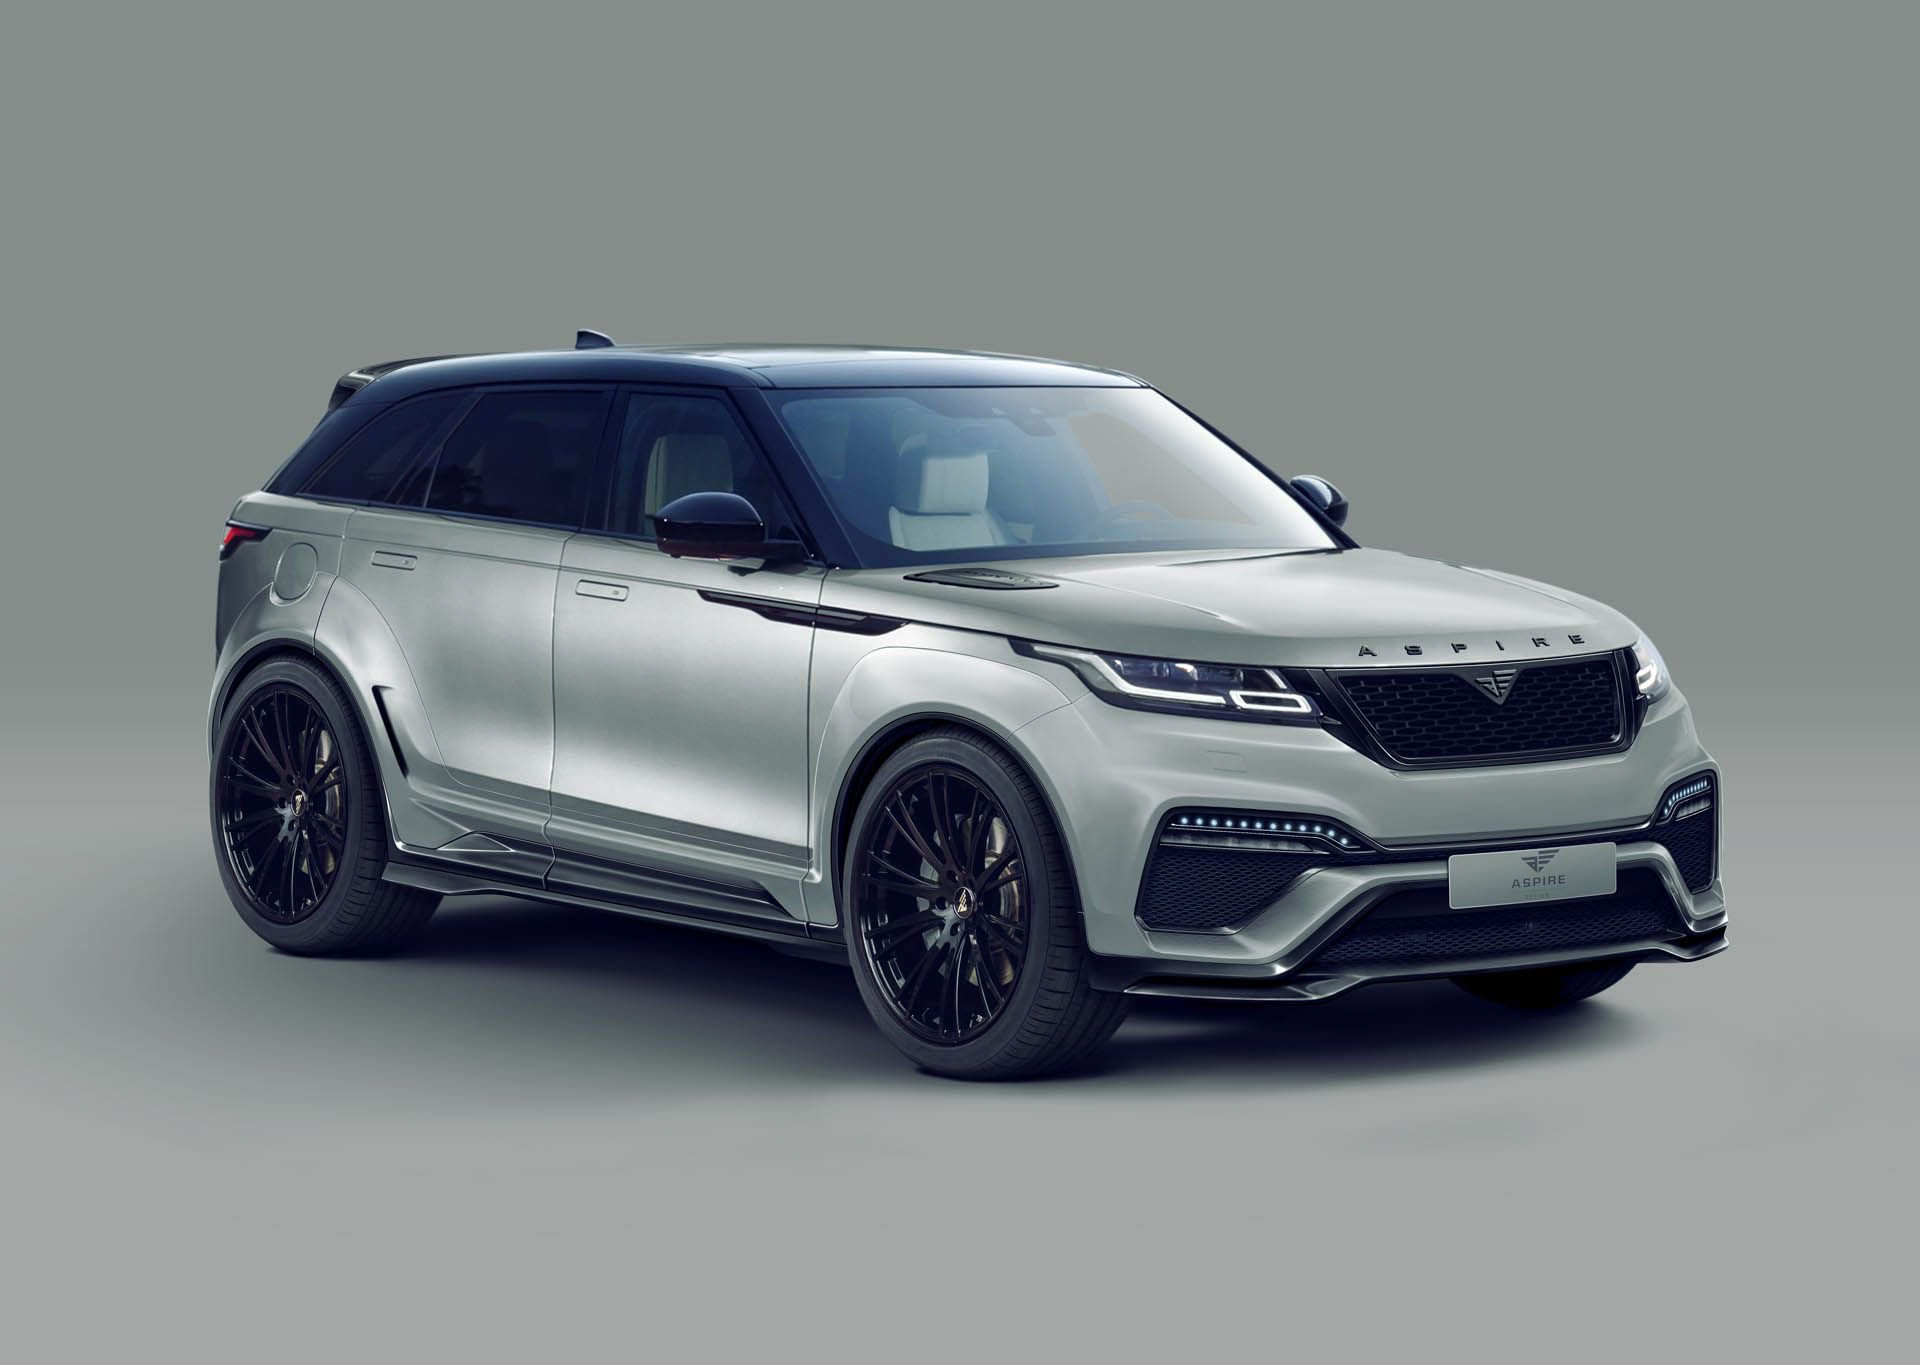 Range Rover Velar by Aspire Design (10)